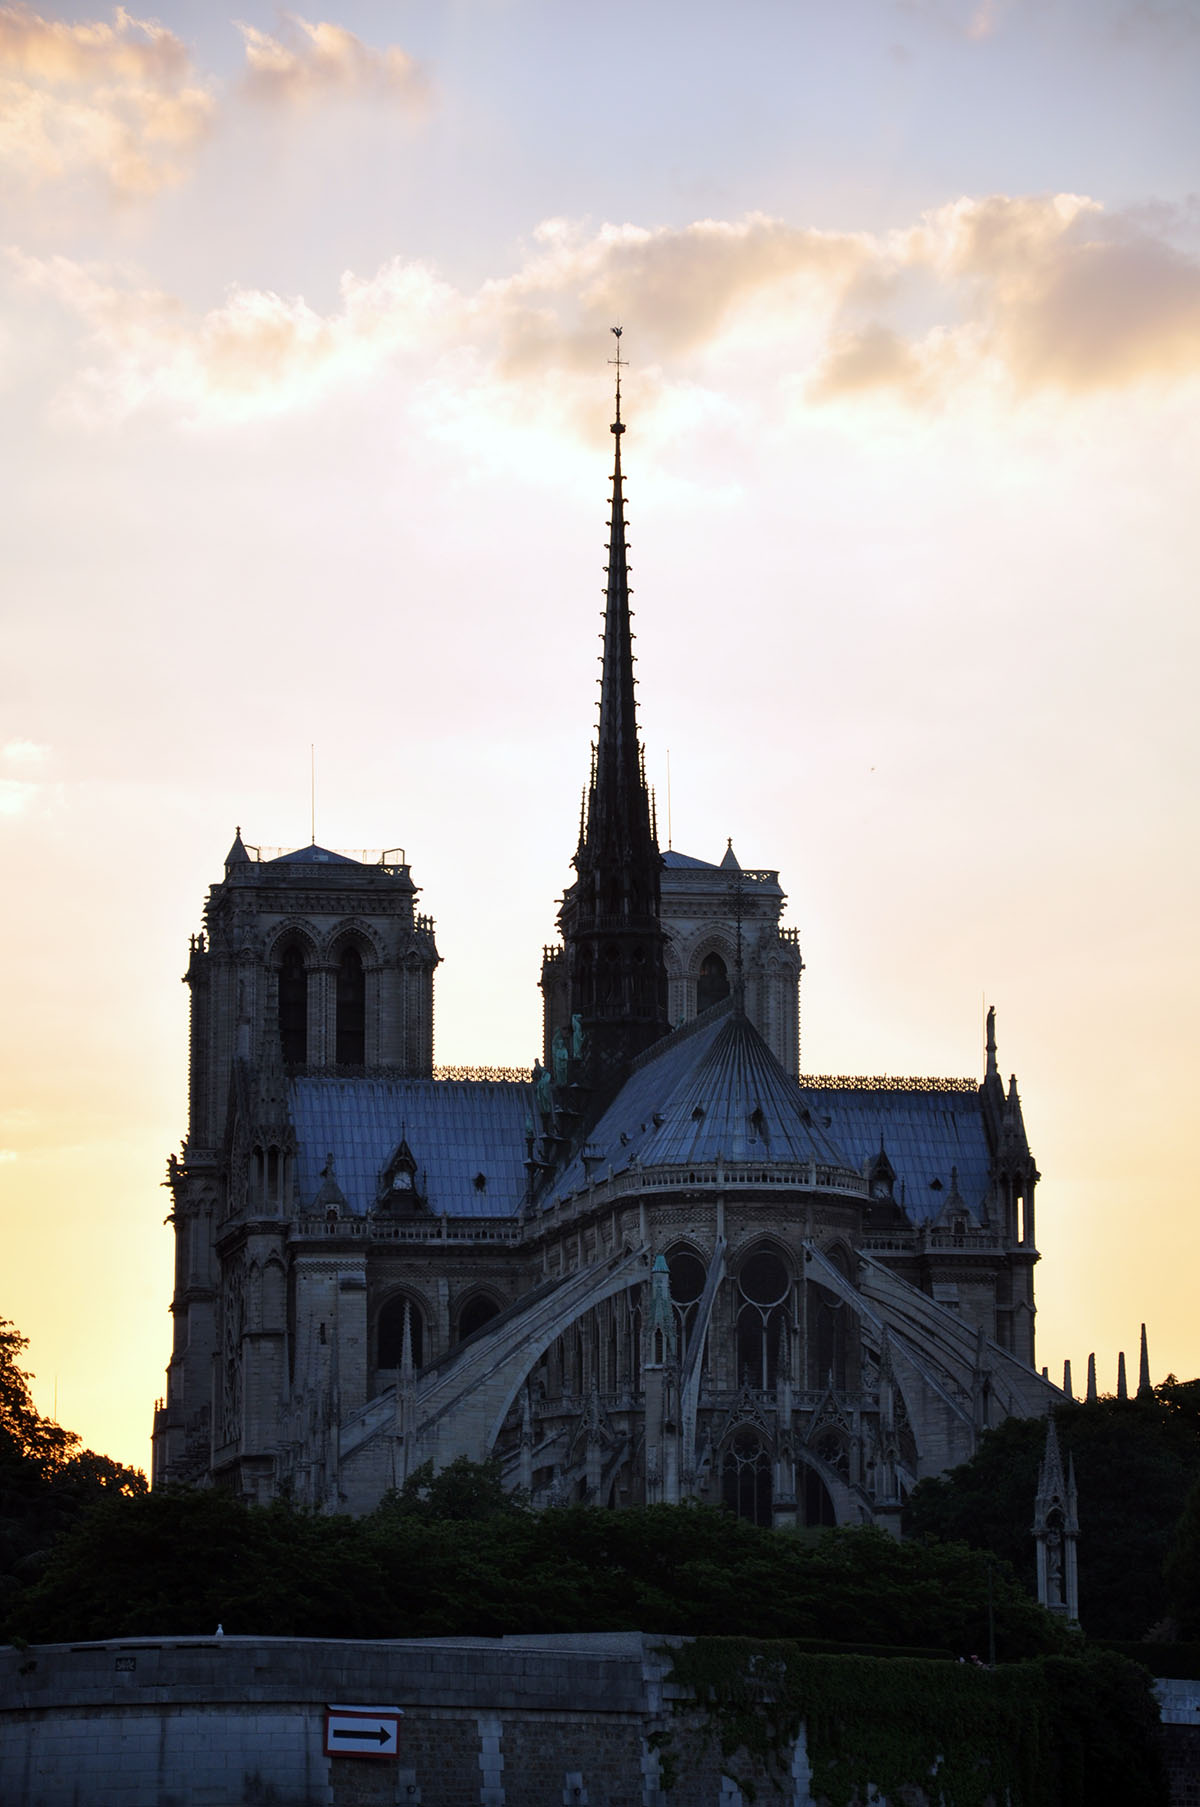 Notre Dame Cathedral night view from the Seine River June 2010 photo by Bob Borson